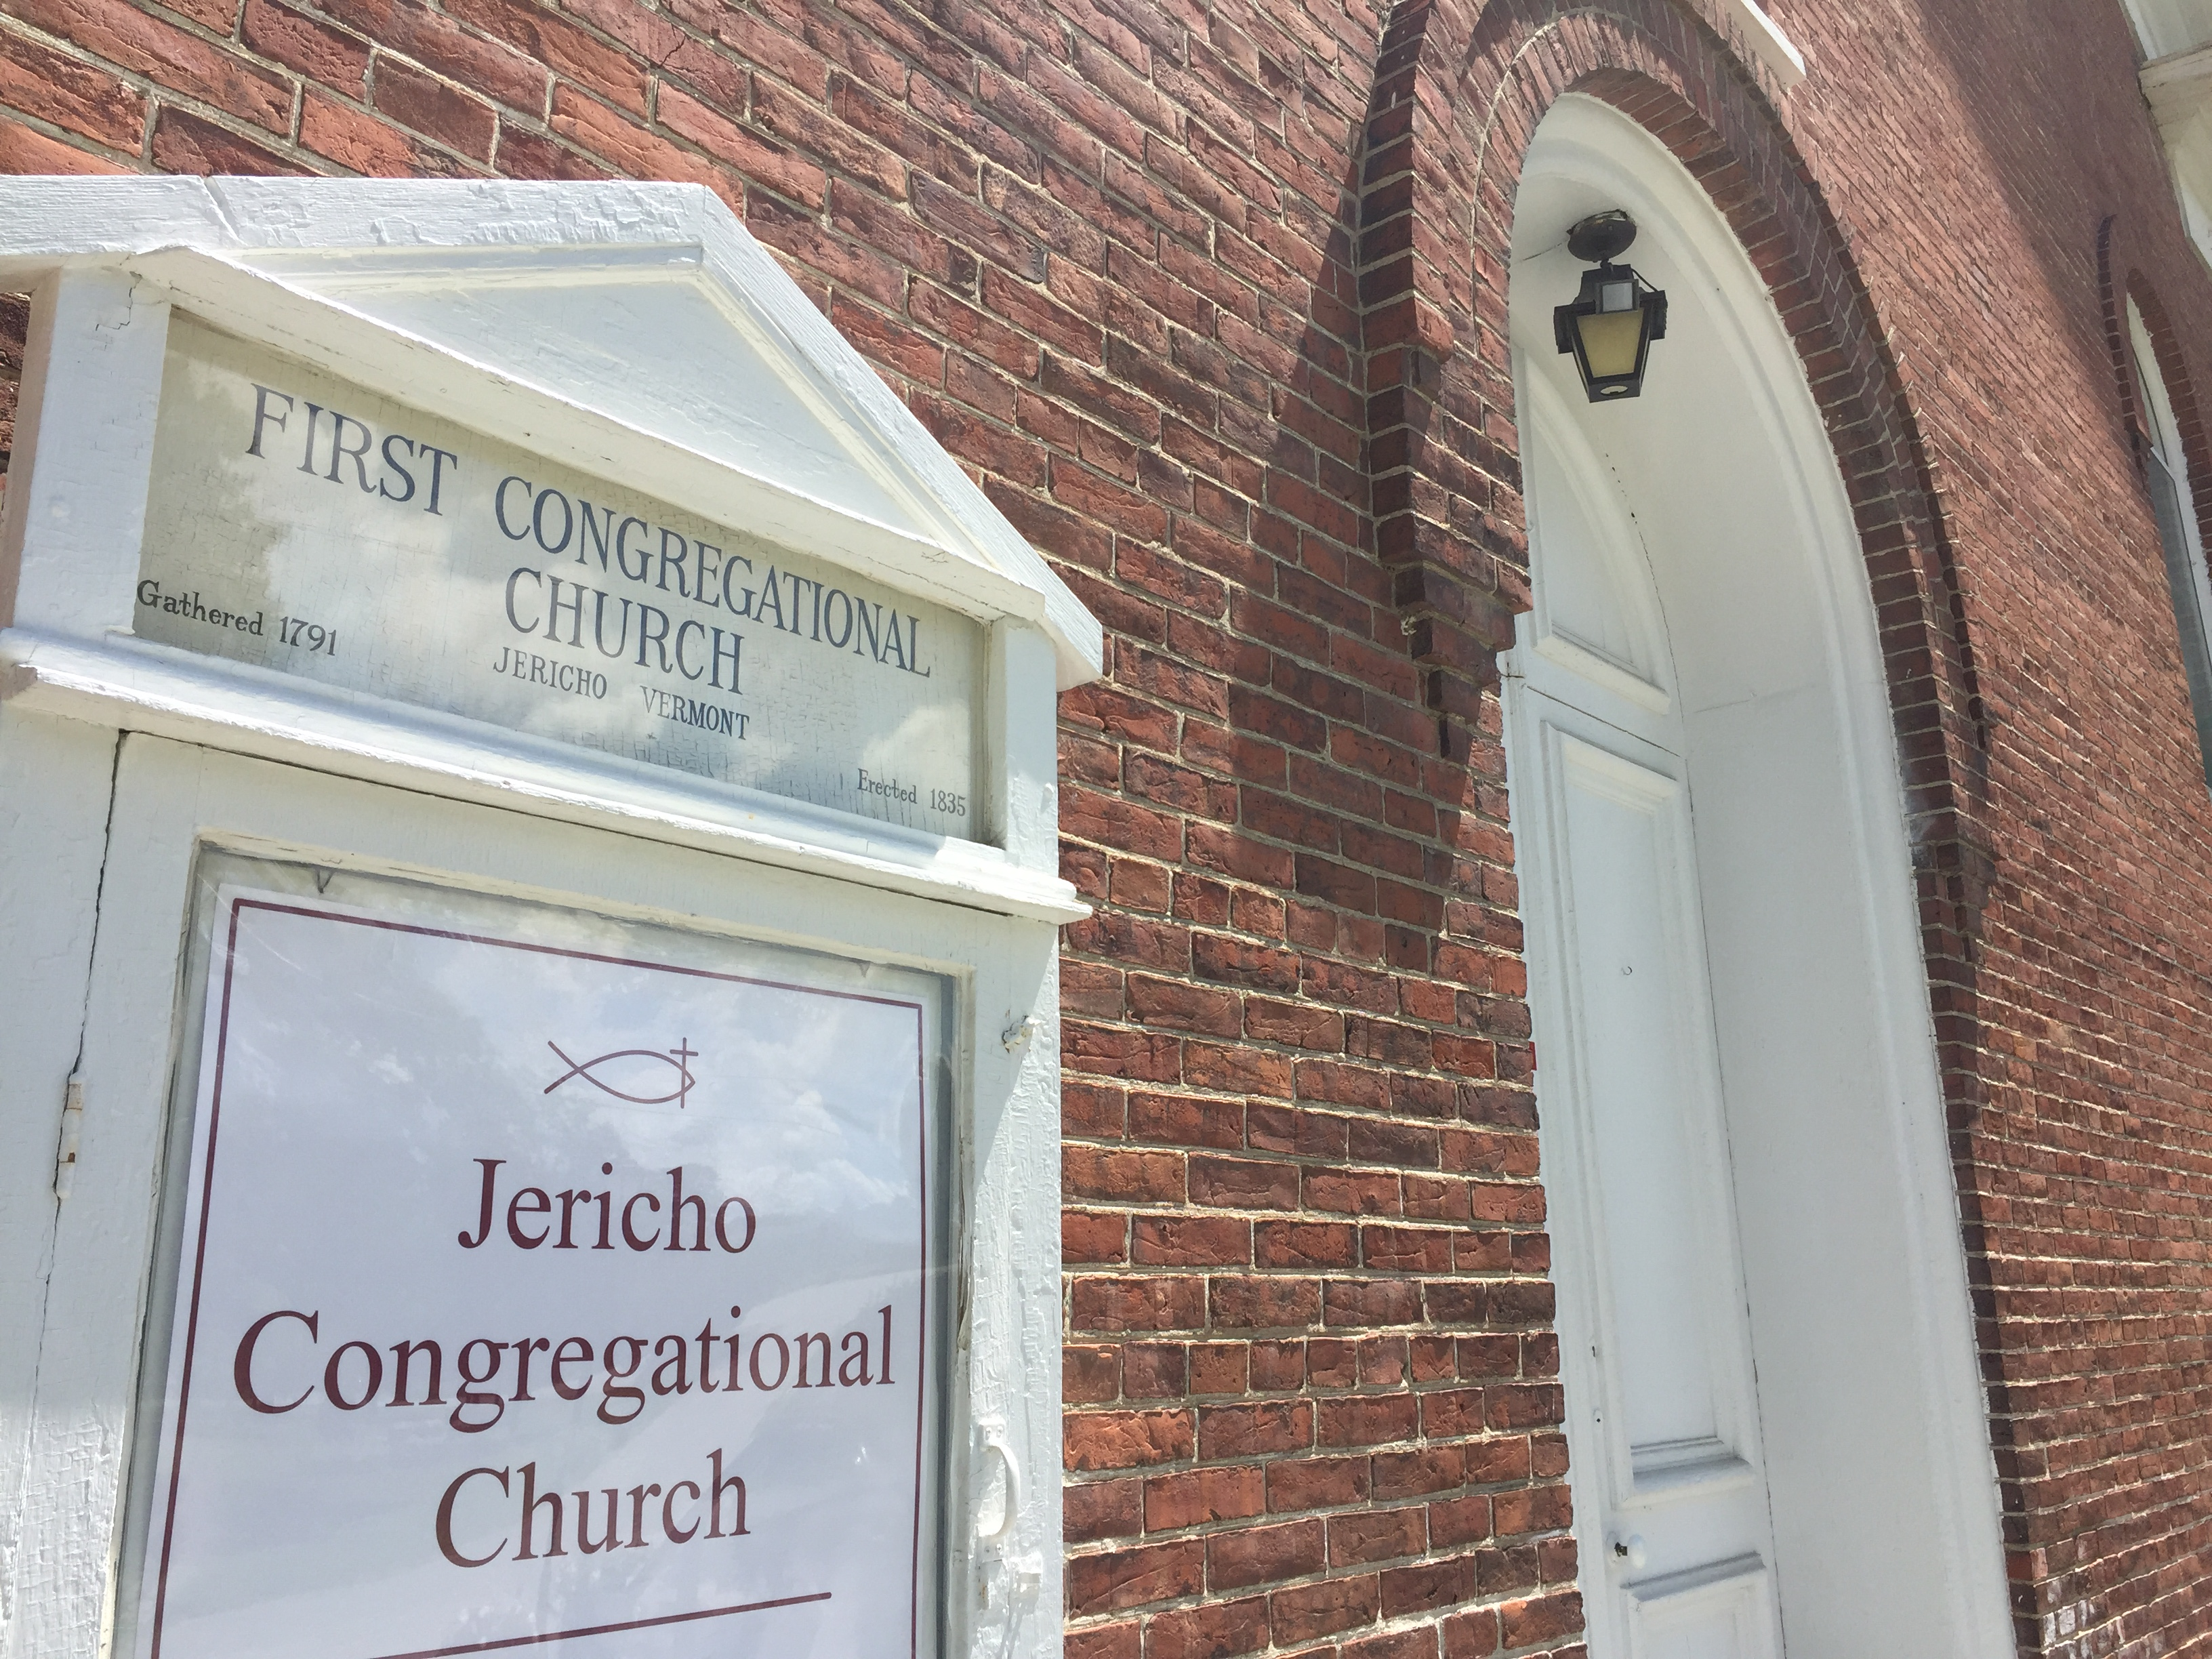 Jericho Congregational Church